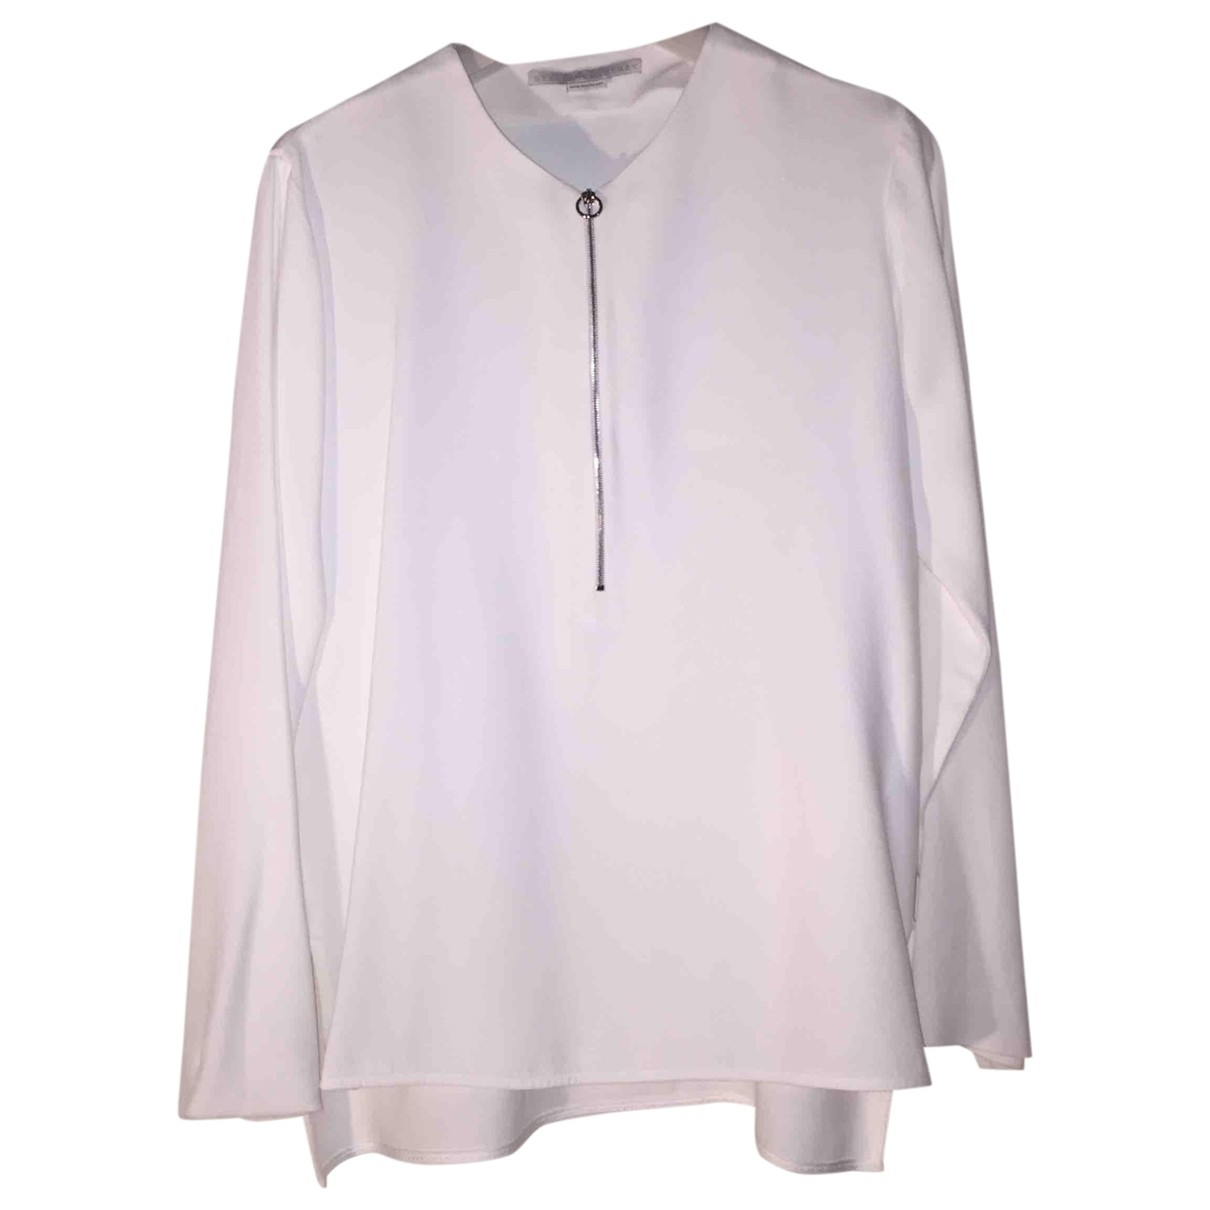 Stella Mccartney \N White  top for Women 38 IT